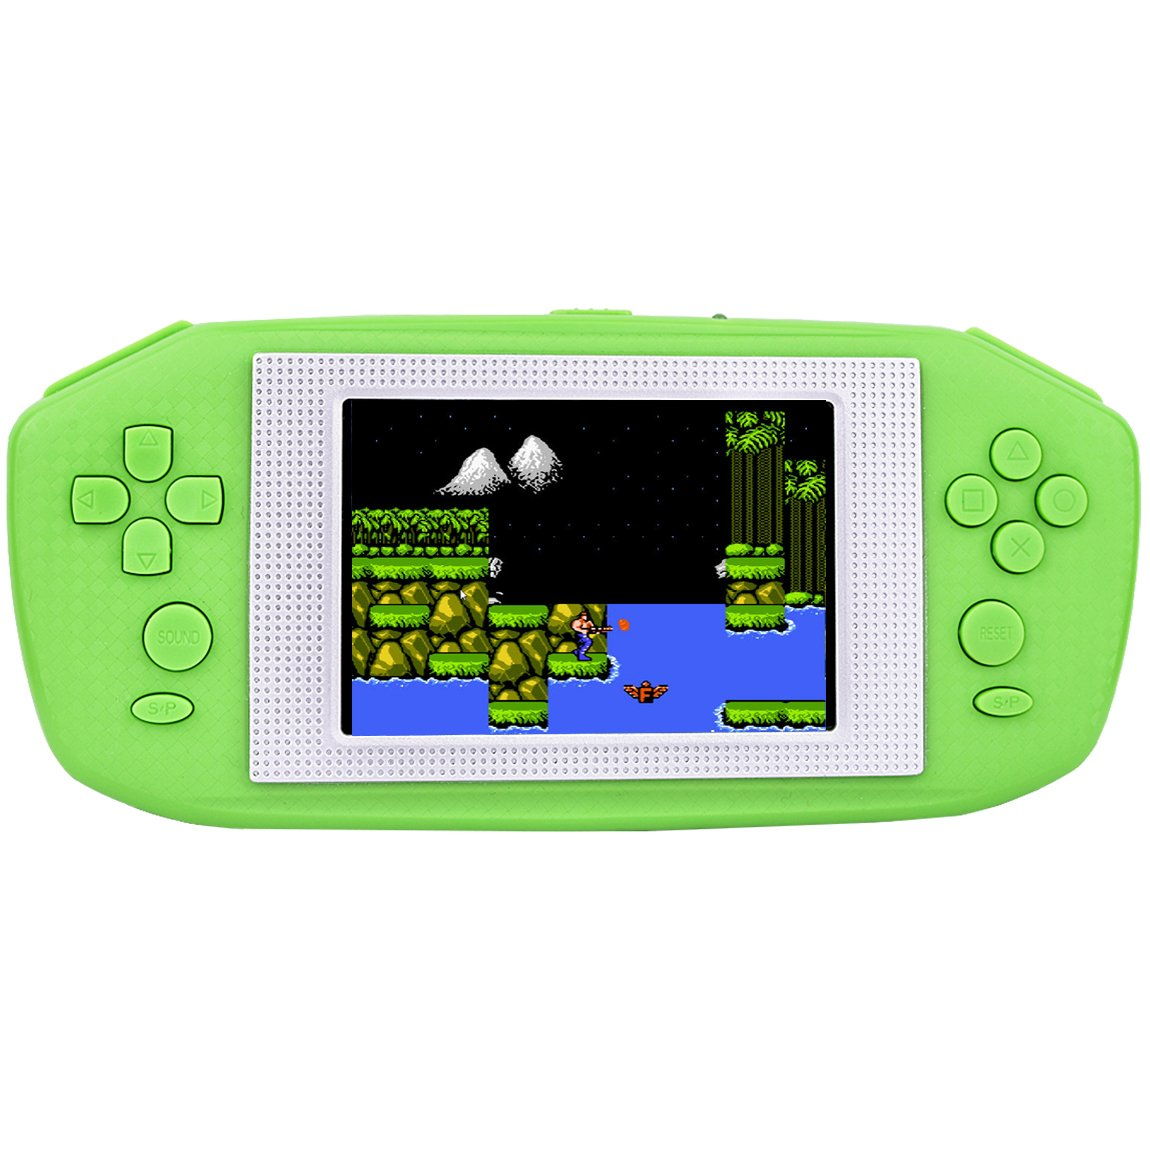 Kids Retro Handheld Game Console with Built in 416 Classic 80's Old Games Portable Gaming Player Boy Arcade System Birthday Gift for Children Video Playstation 3.5'' Color LCD Big Screen(Green)